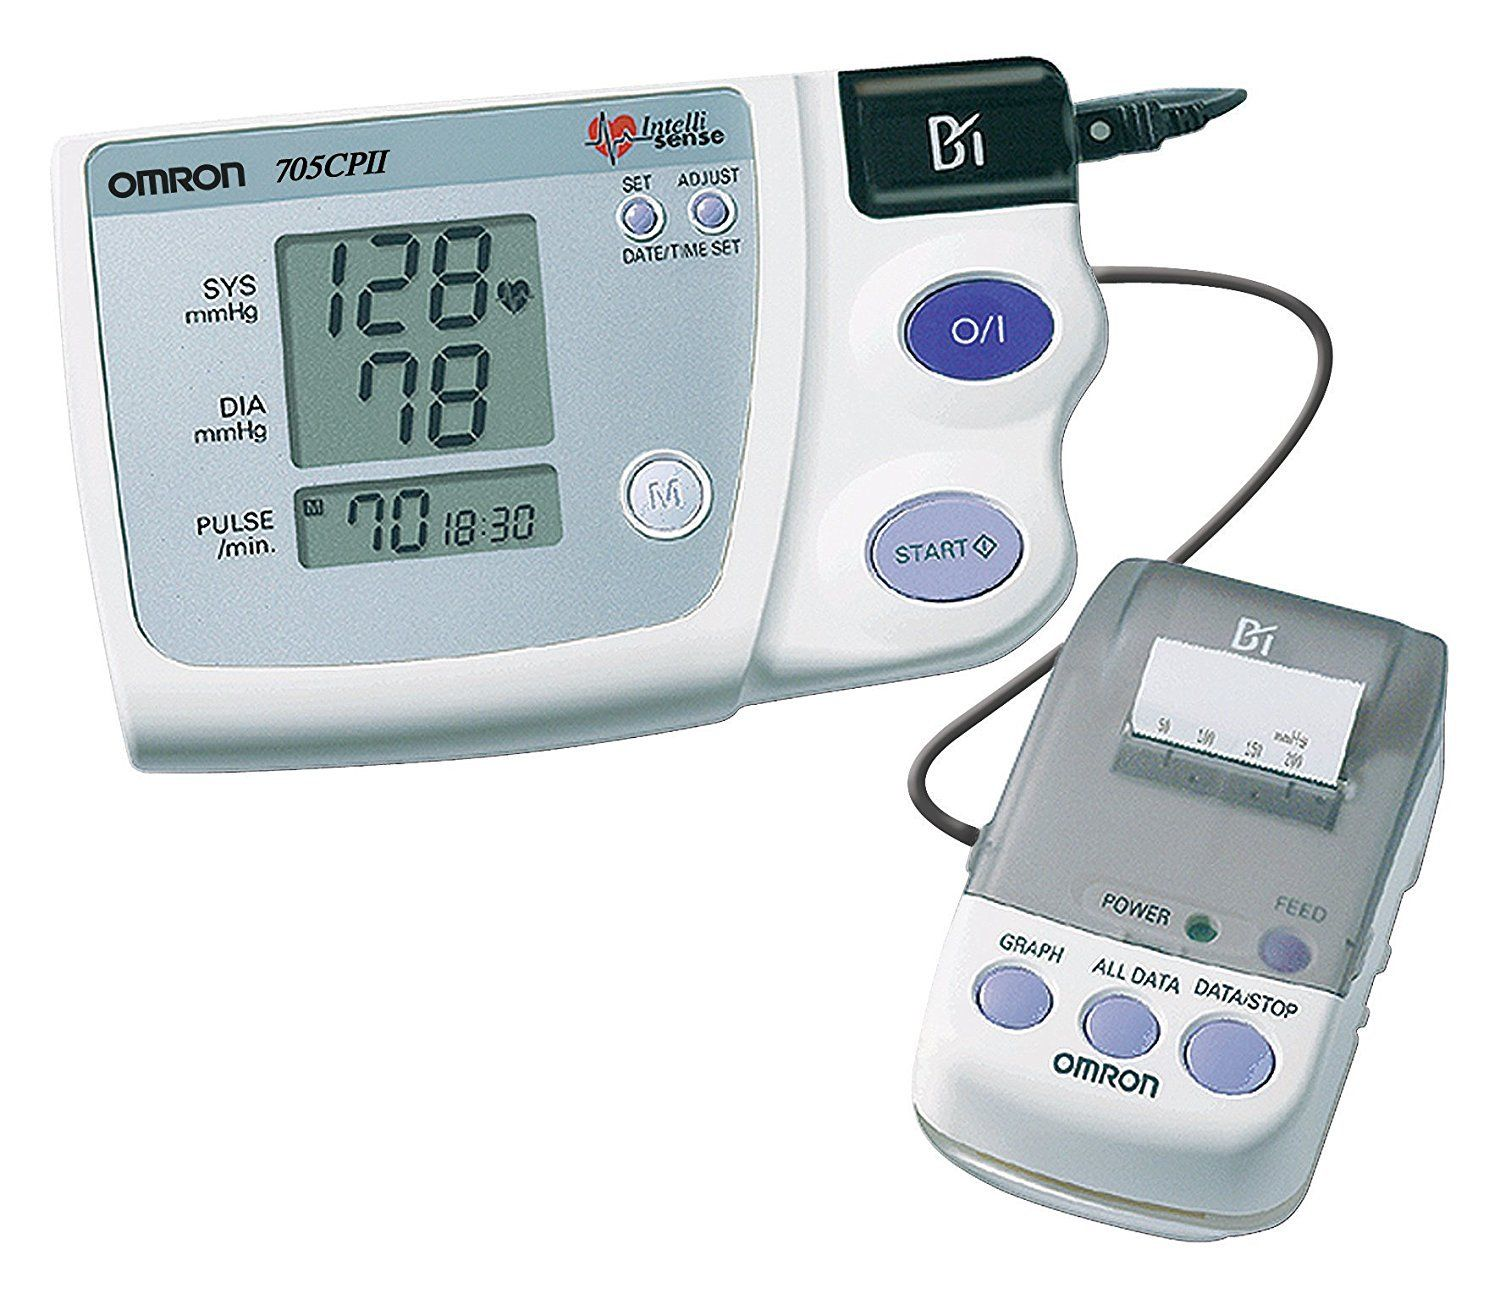 Omron 705CP II Upper Arm Blood Pressure Monitor With Thermal Printer - Brand New